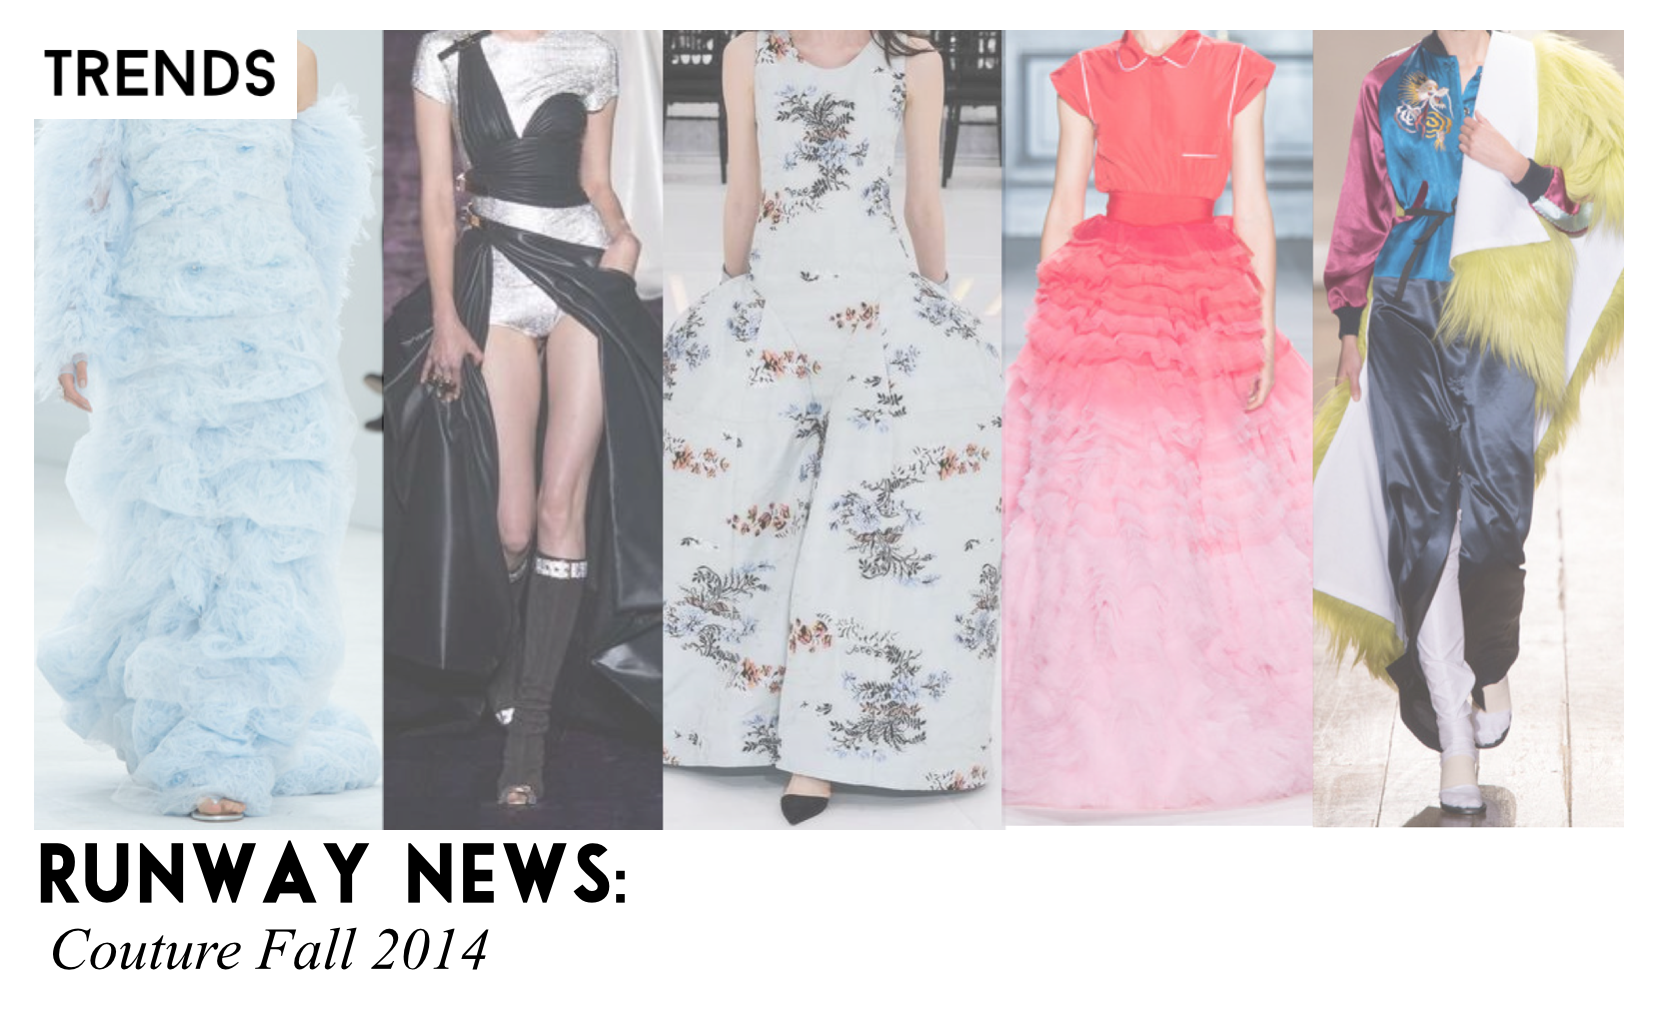 Couture Runway 2014 News